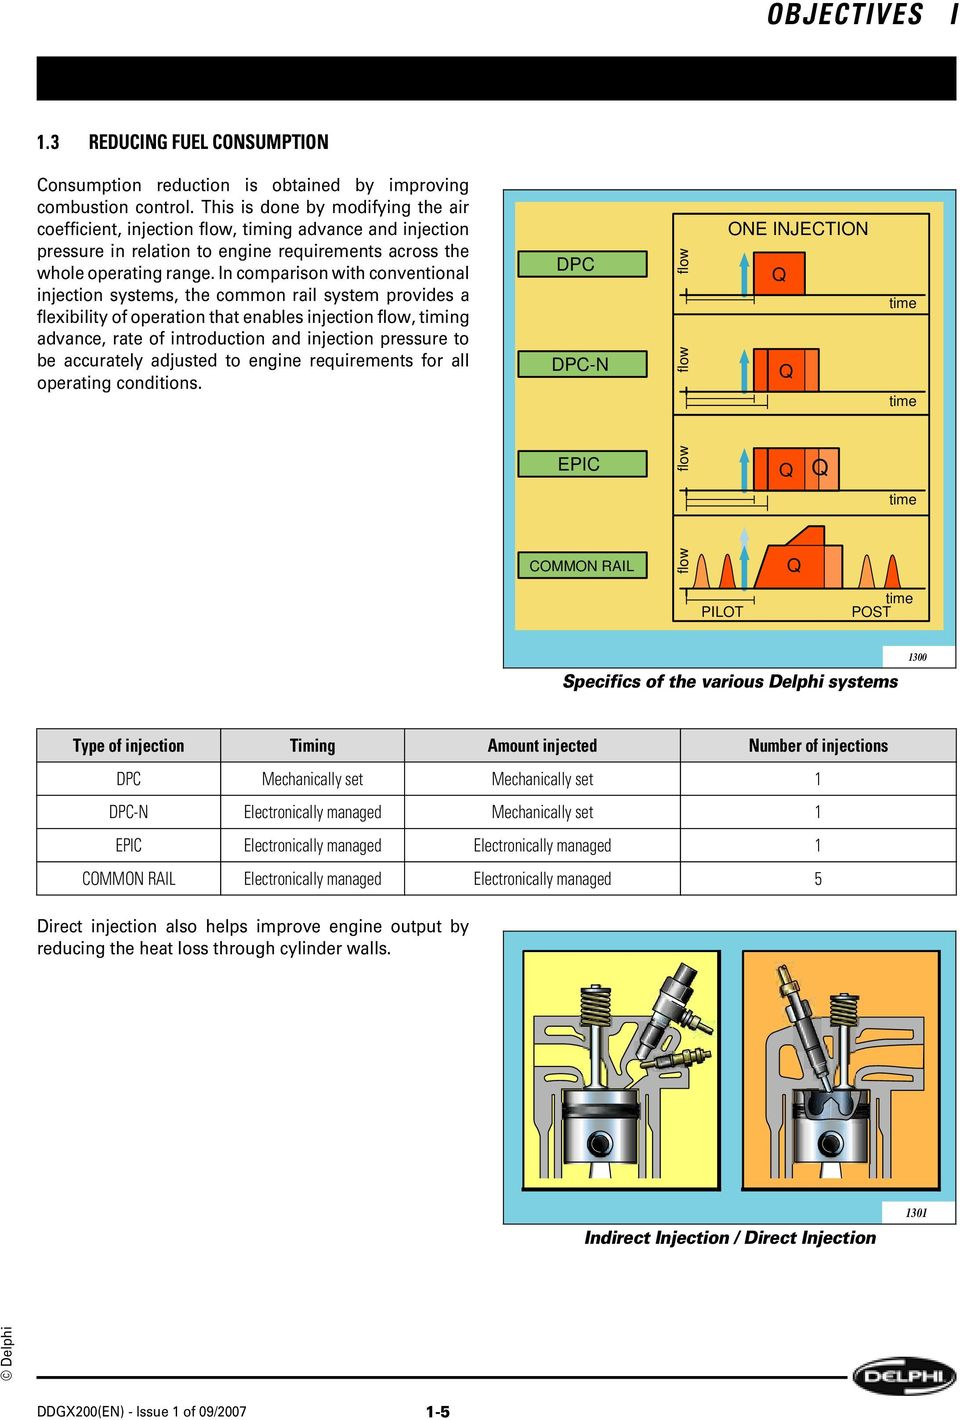 Common Rail Manual Principles Of Operation Pdf Engine Heat Loss Diagram In Comparison With Conventional Injection Systems The System Provides A Flexibility